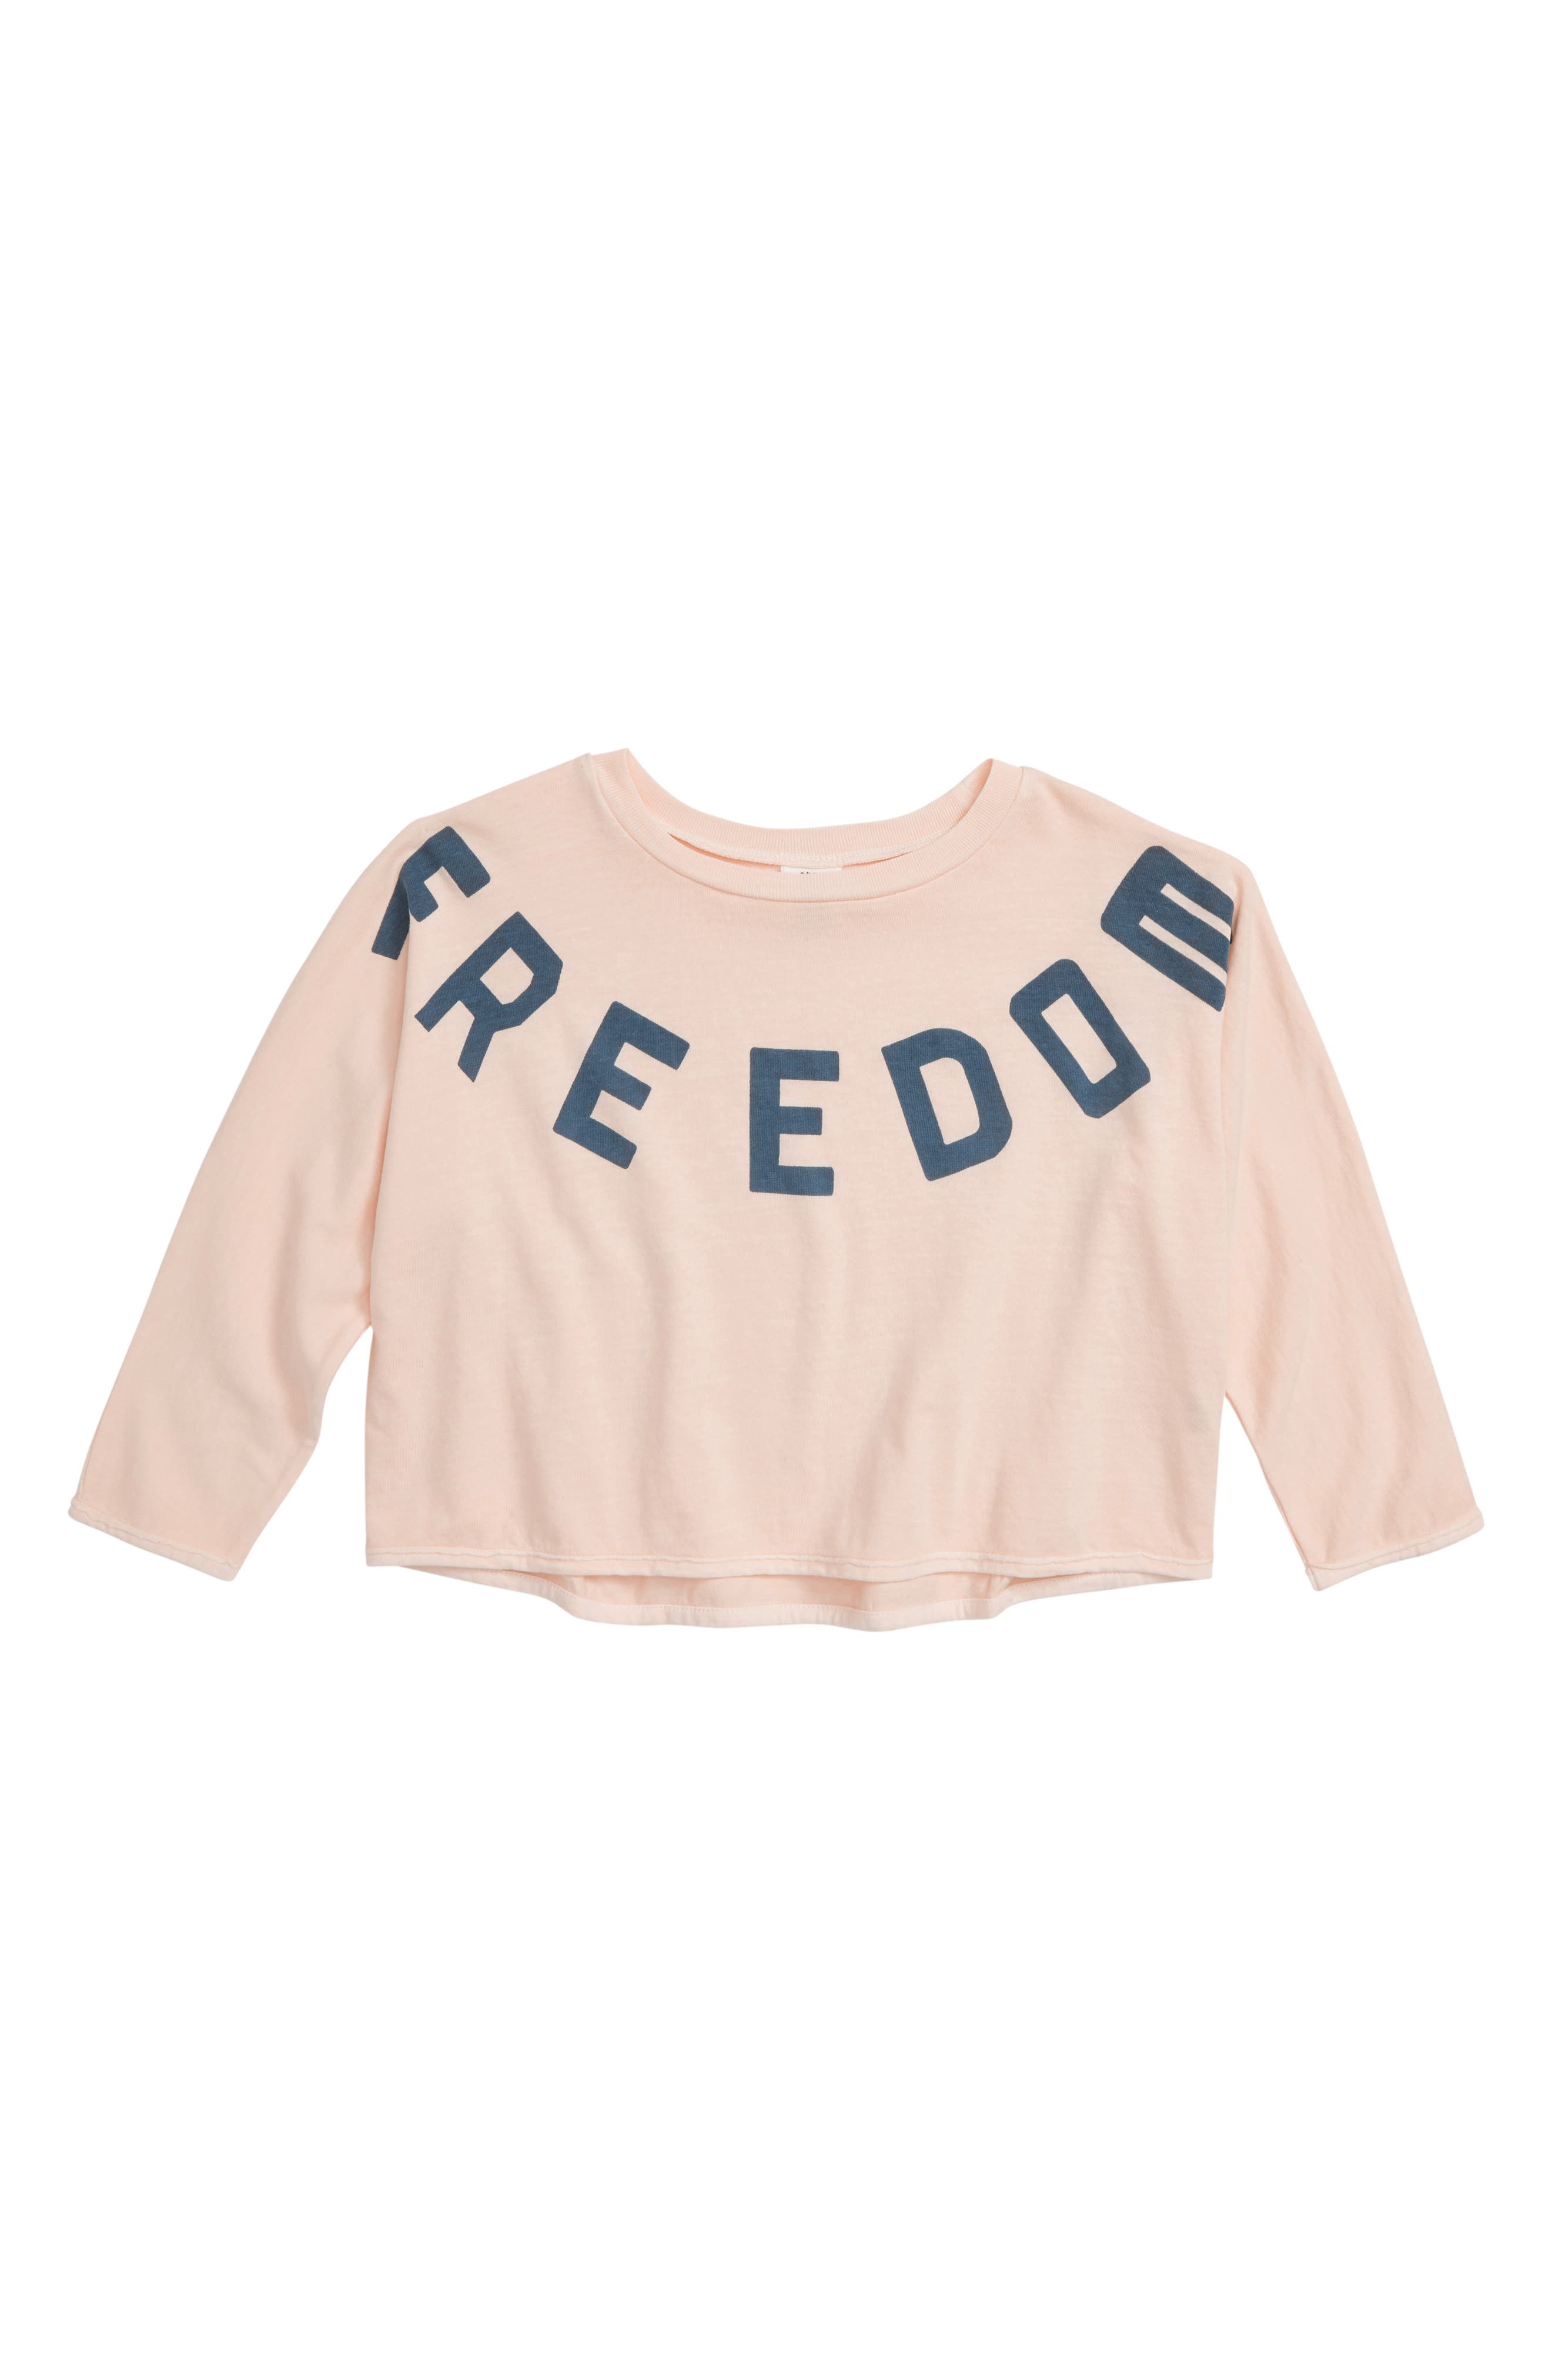 Freedom Tee,                         Main,                         color, 680